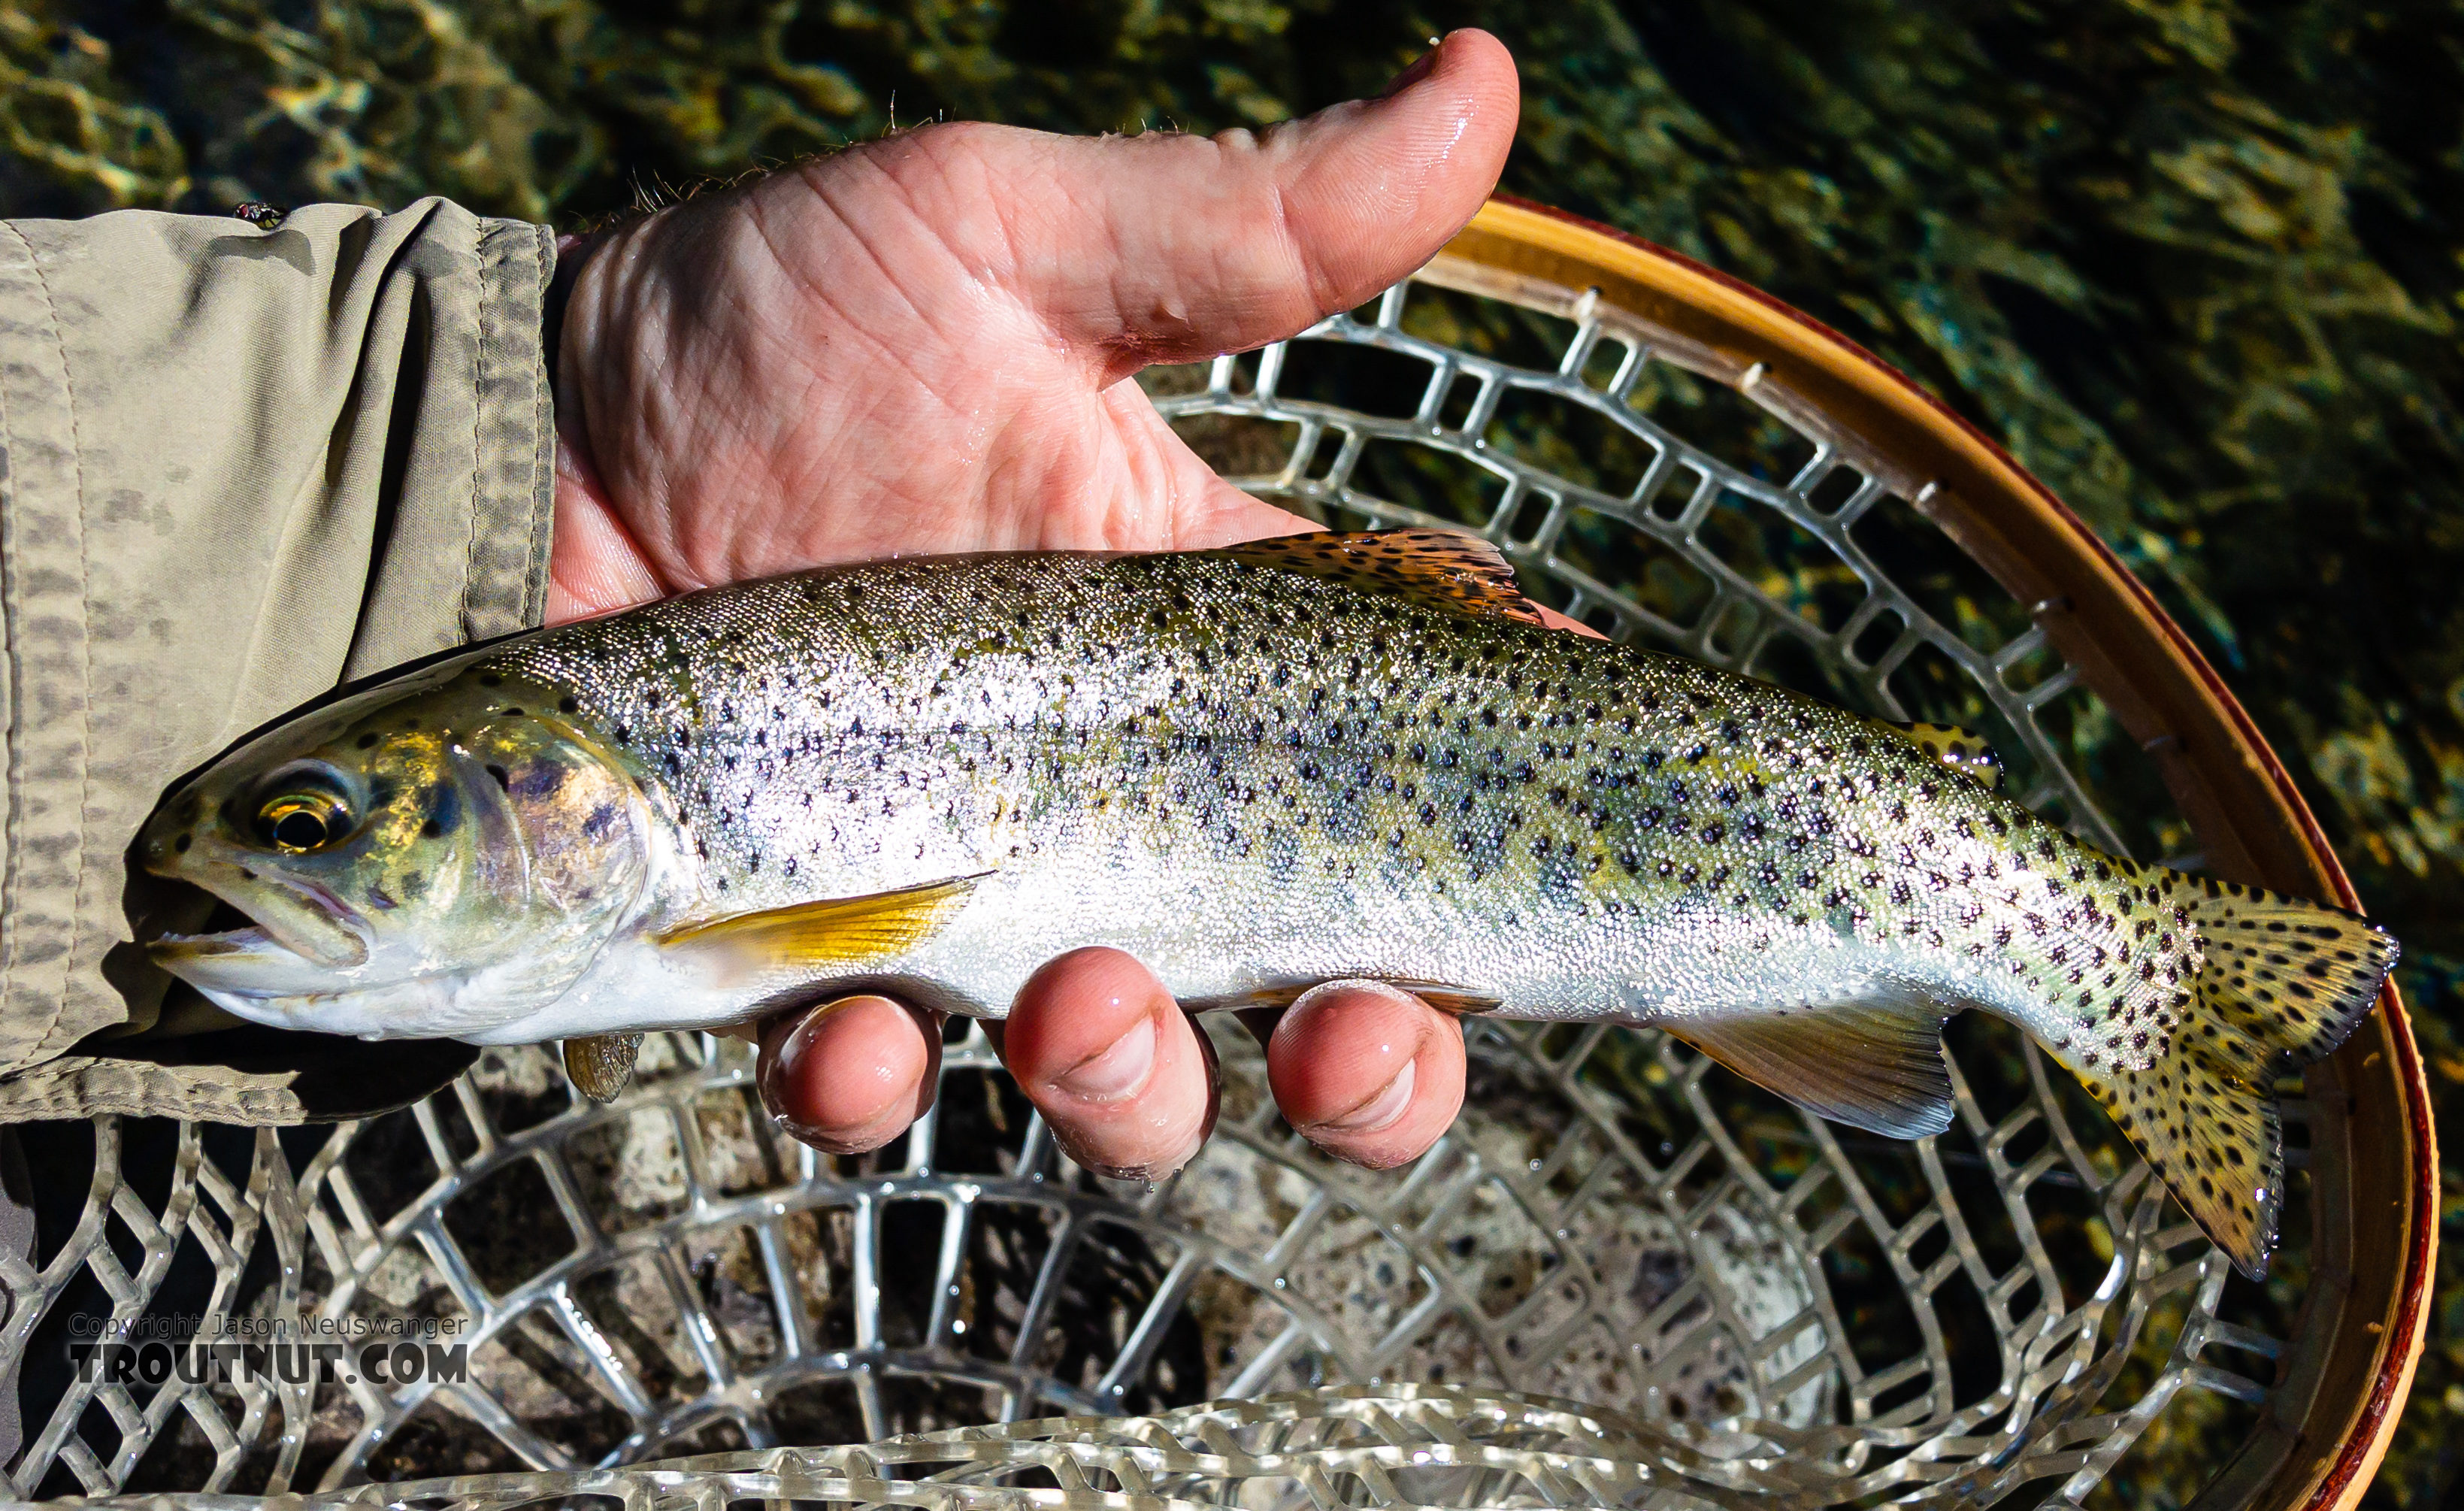 A pretty decent rainbow for a creek this size. From Mystery Creek # 249 in Washington.